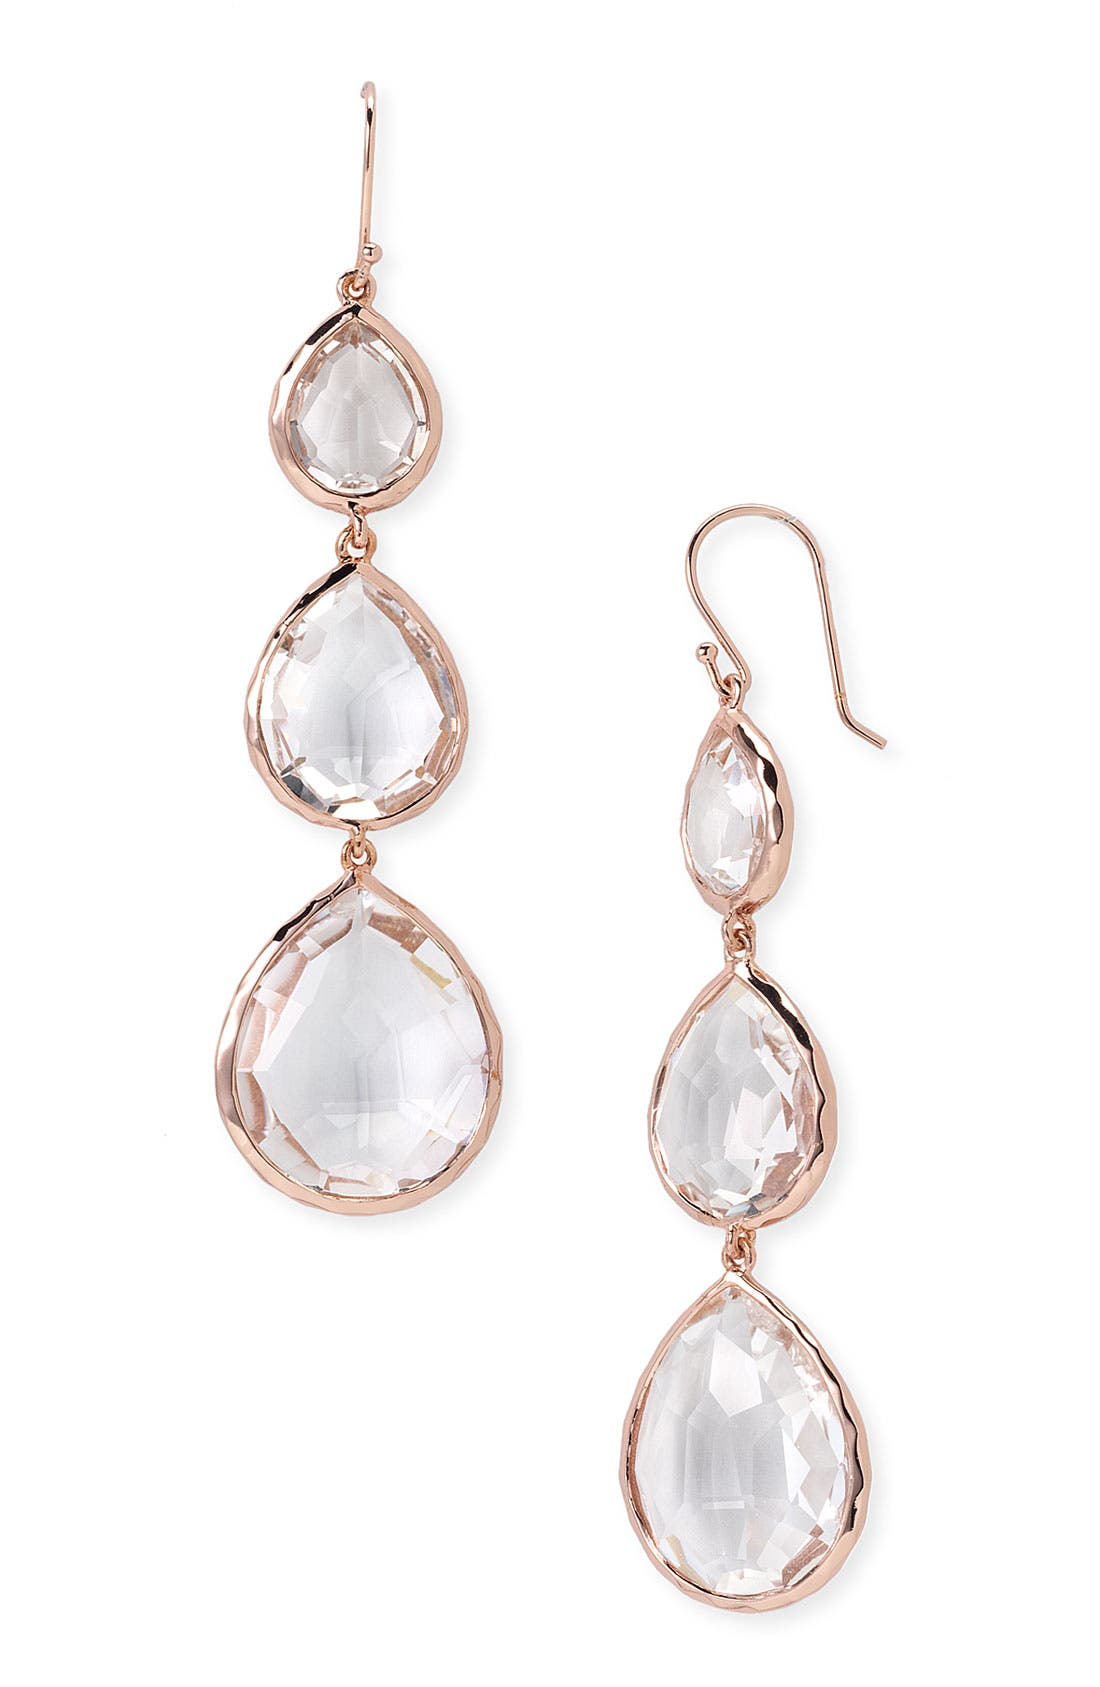 Alternate Image 1 Selected - Ippolita 'Triple Teardrop' Rosé Earrings